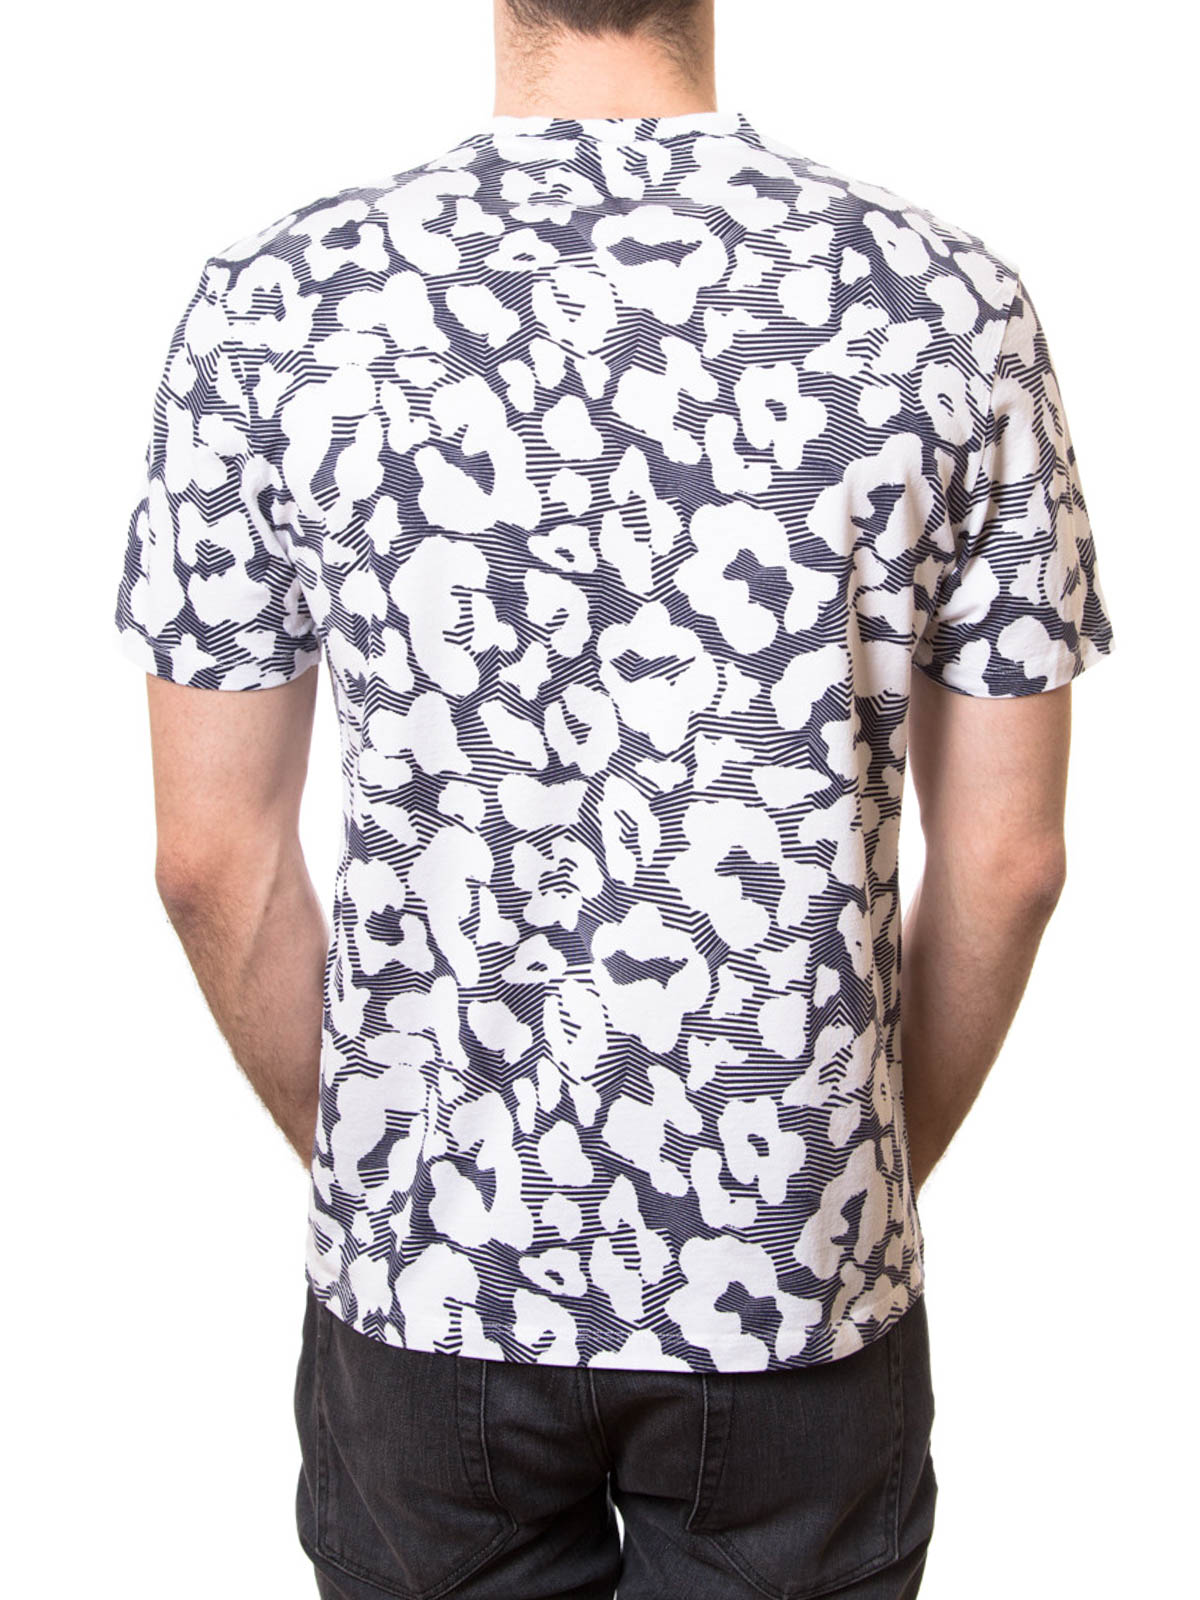 All over printed t shirt by neil barrett t shirts ikrix for All over print t shirt